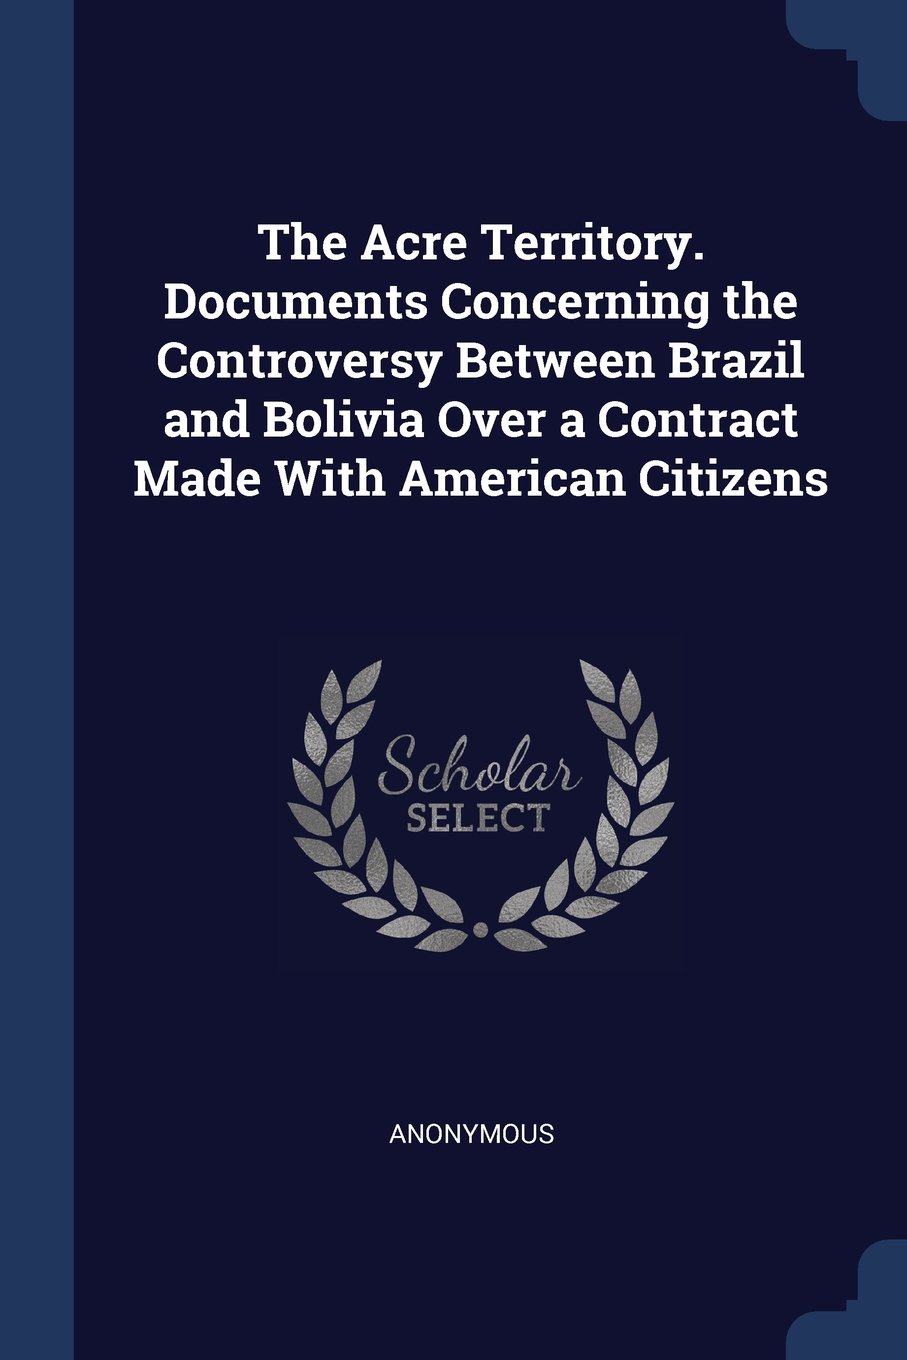 The Acre Territory. Documents Concerning the Controversy Between Brazil and Bolivia Over a Contract Made With American Citizens